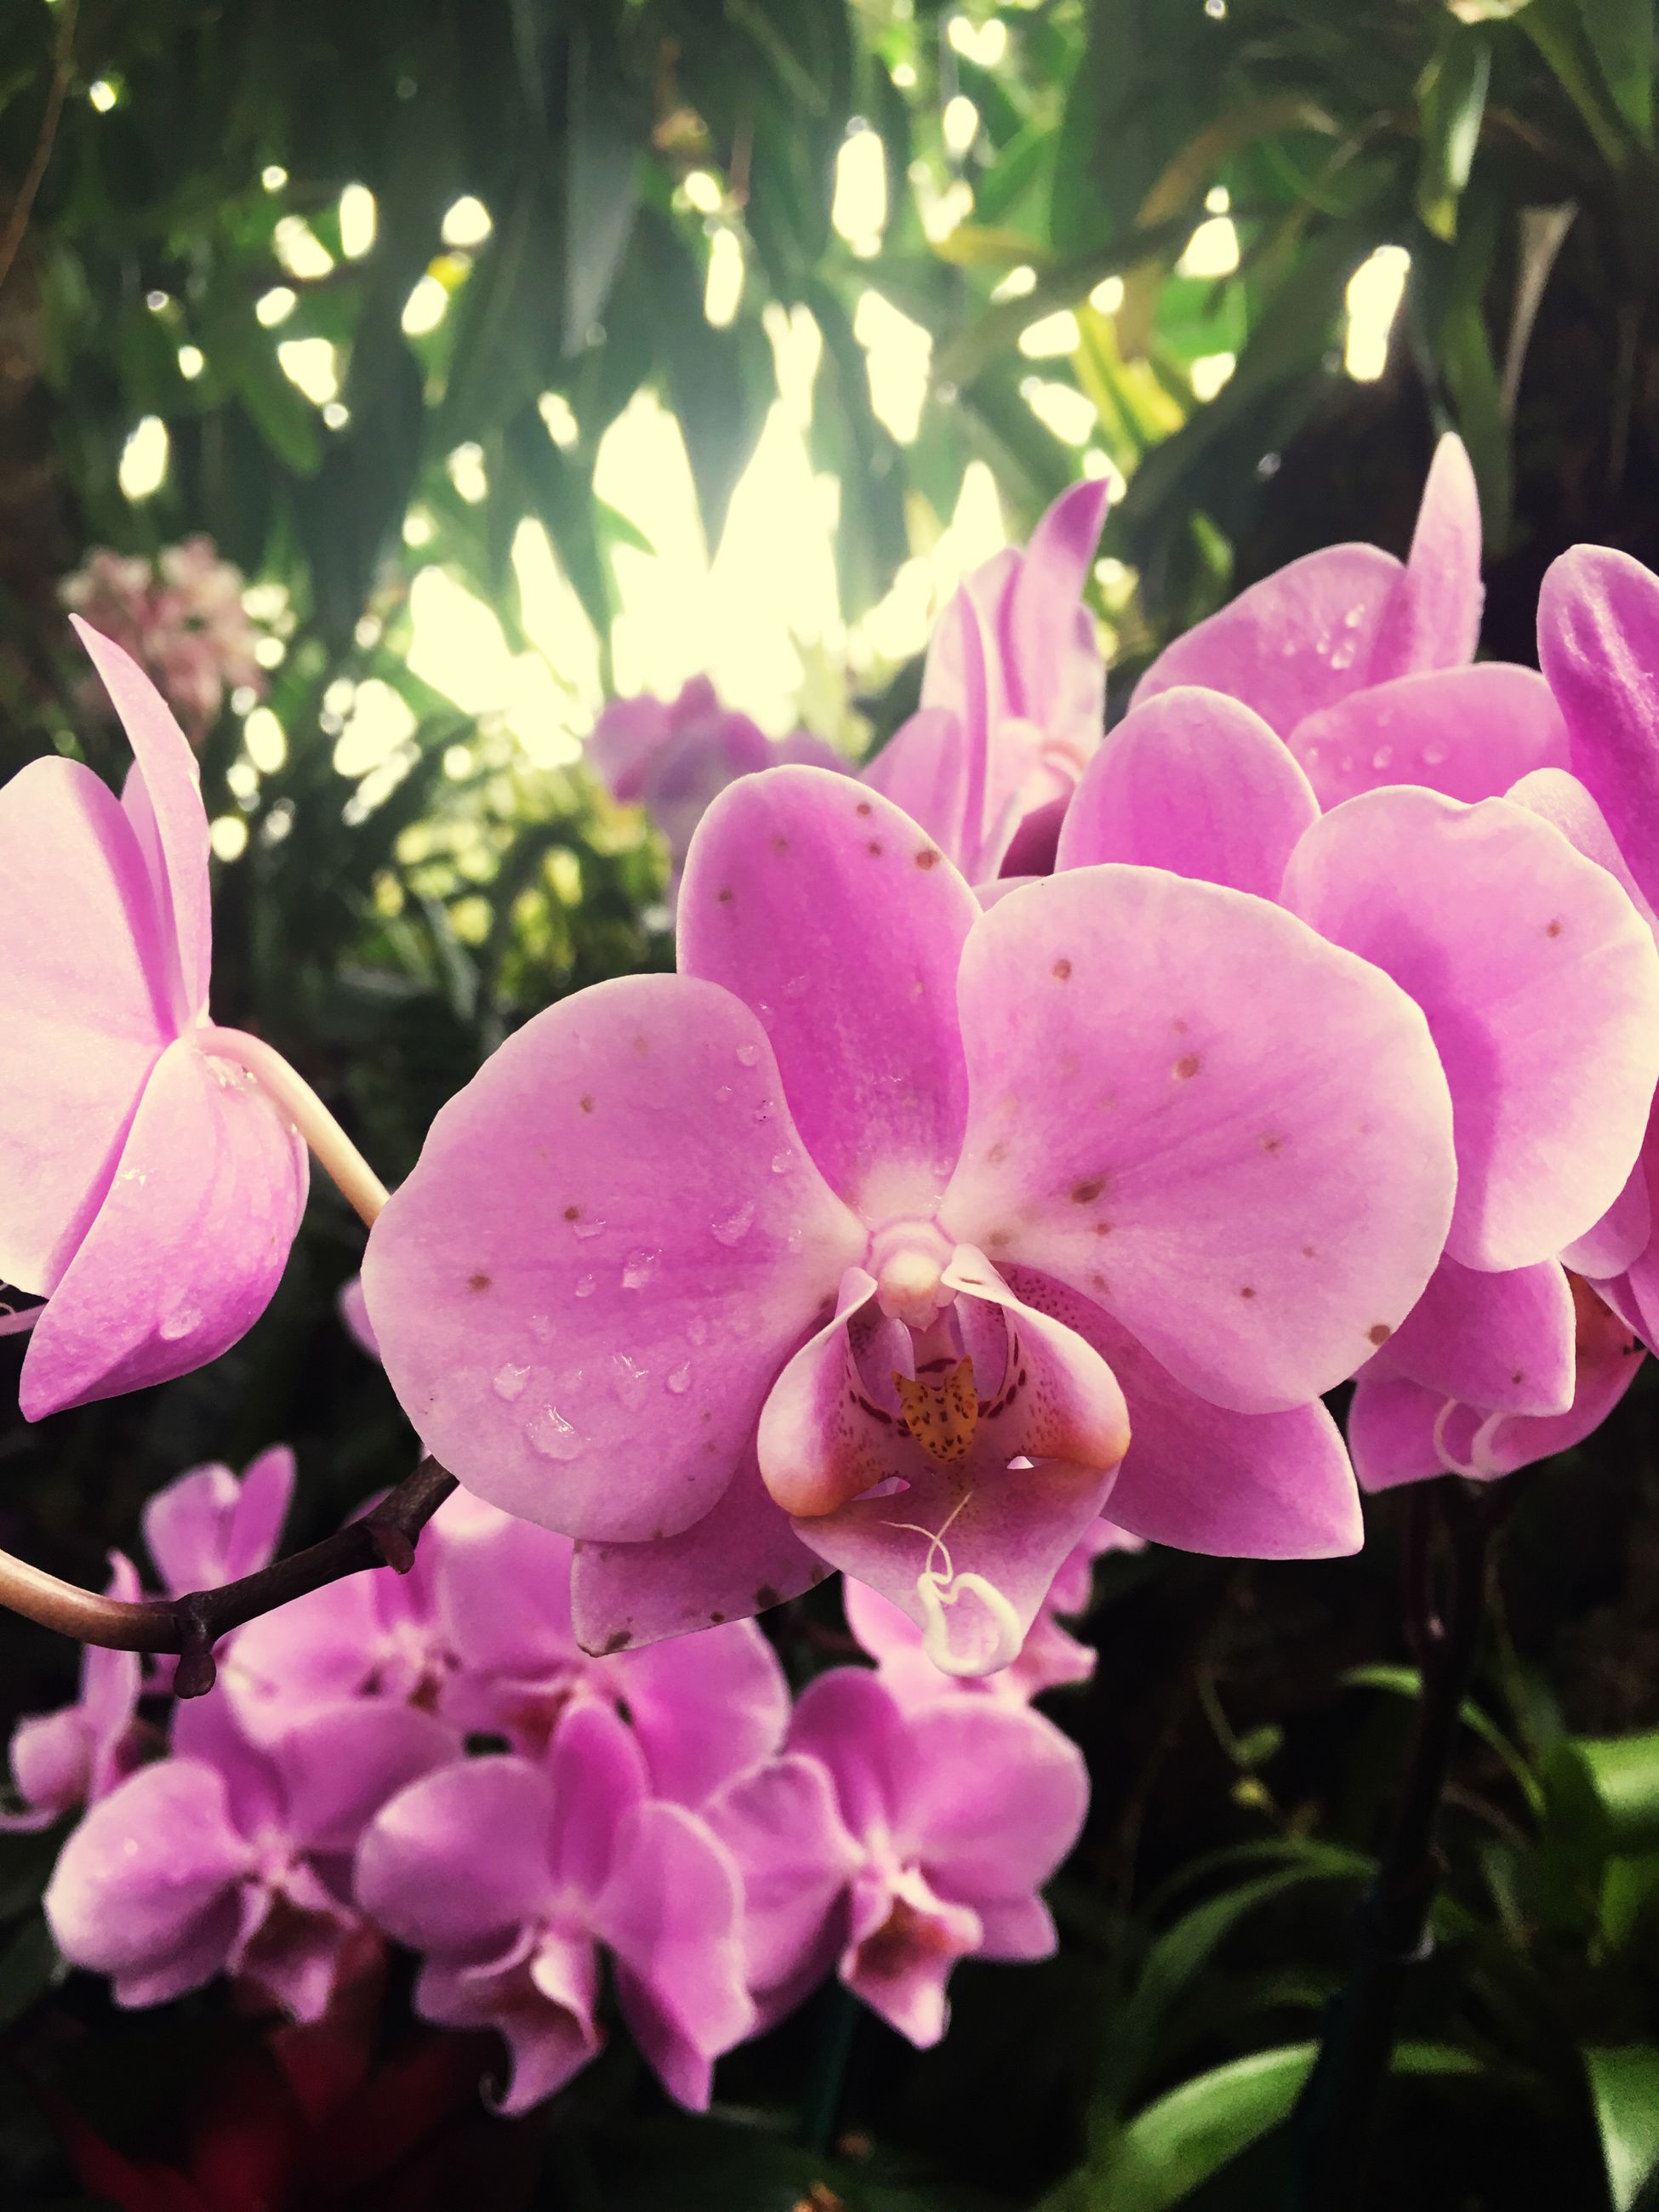 pink color, flower, growth, beauty in nature, fragility, no people, nature, freshness, petal, close-up, plant, outdoors, flower head, orchid, day, rhododendron